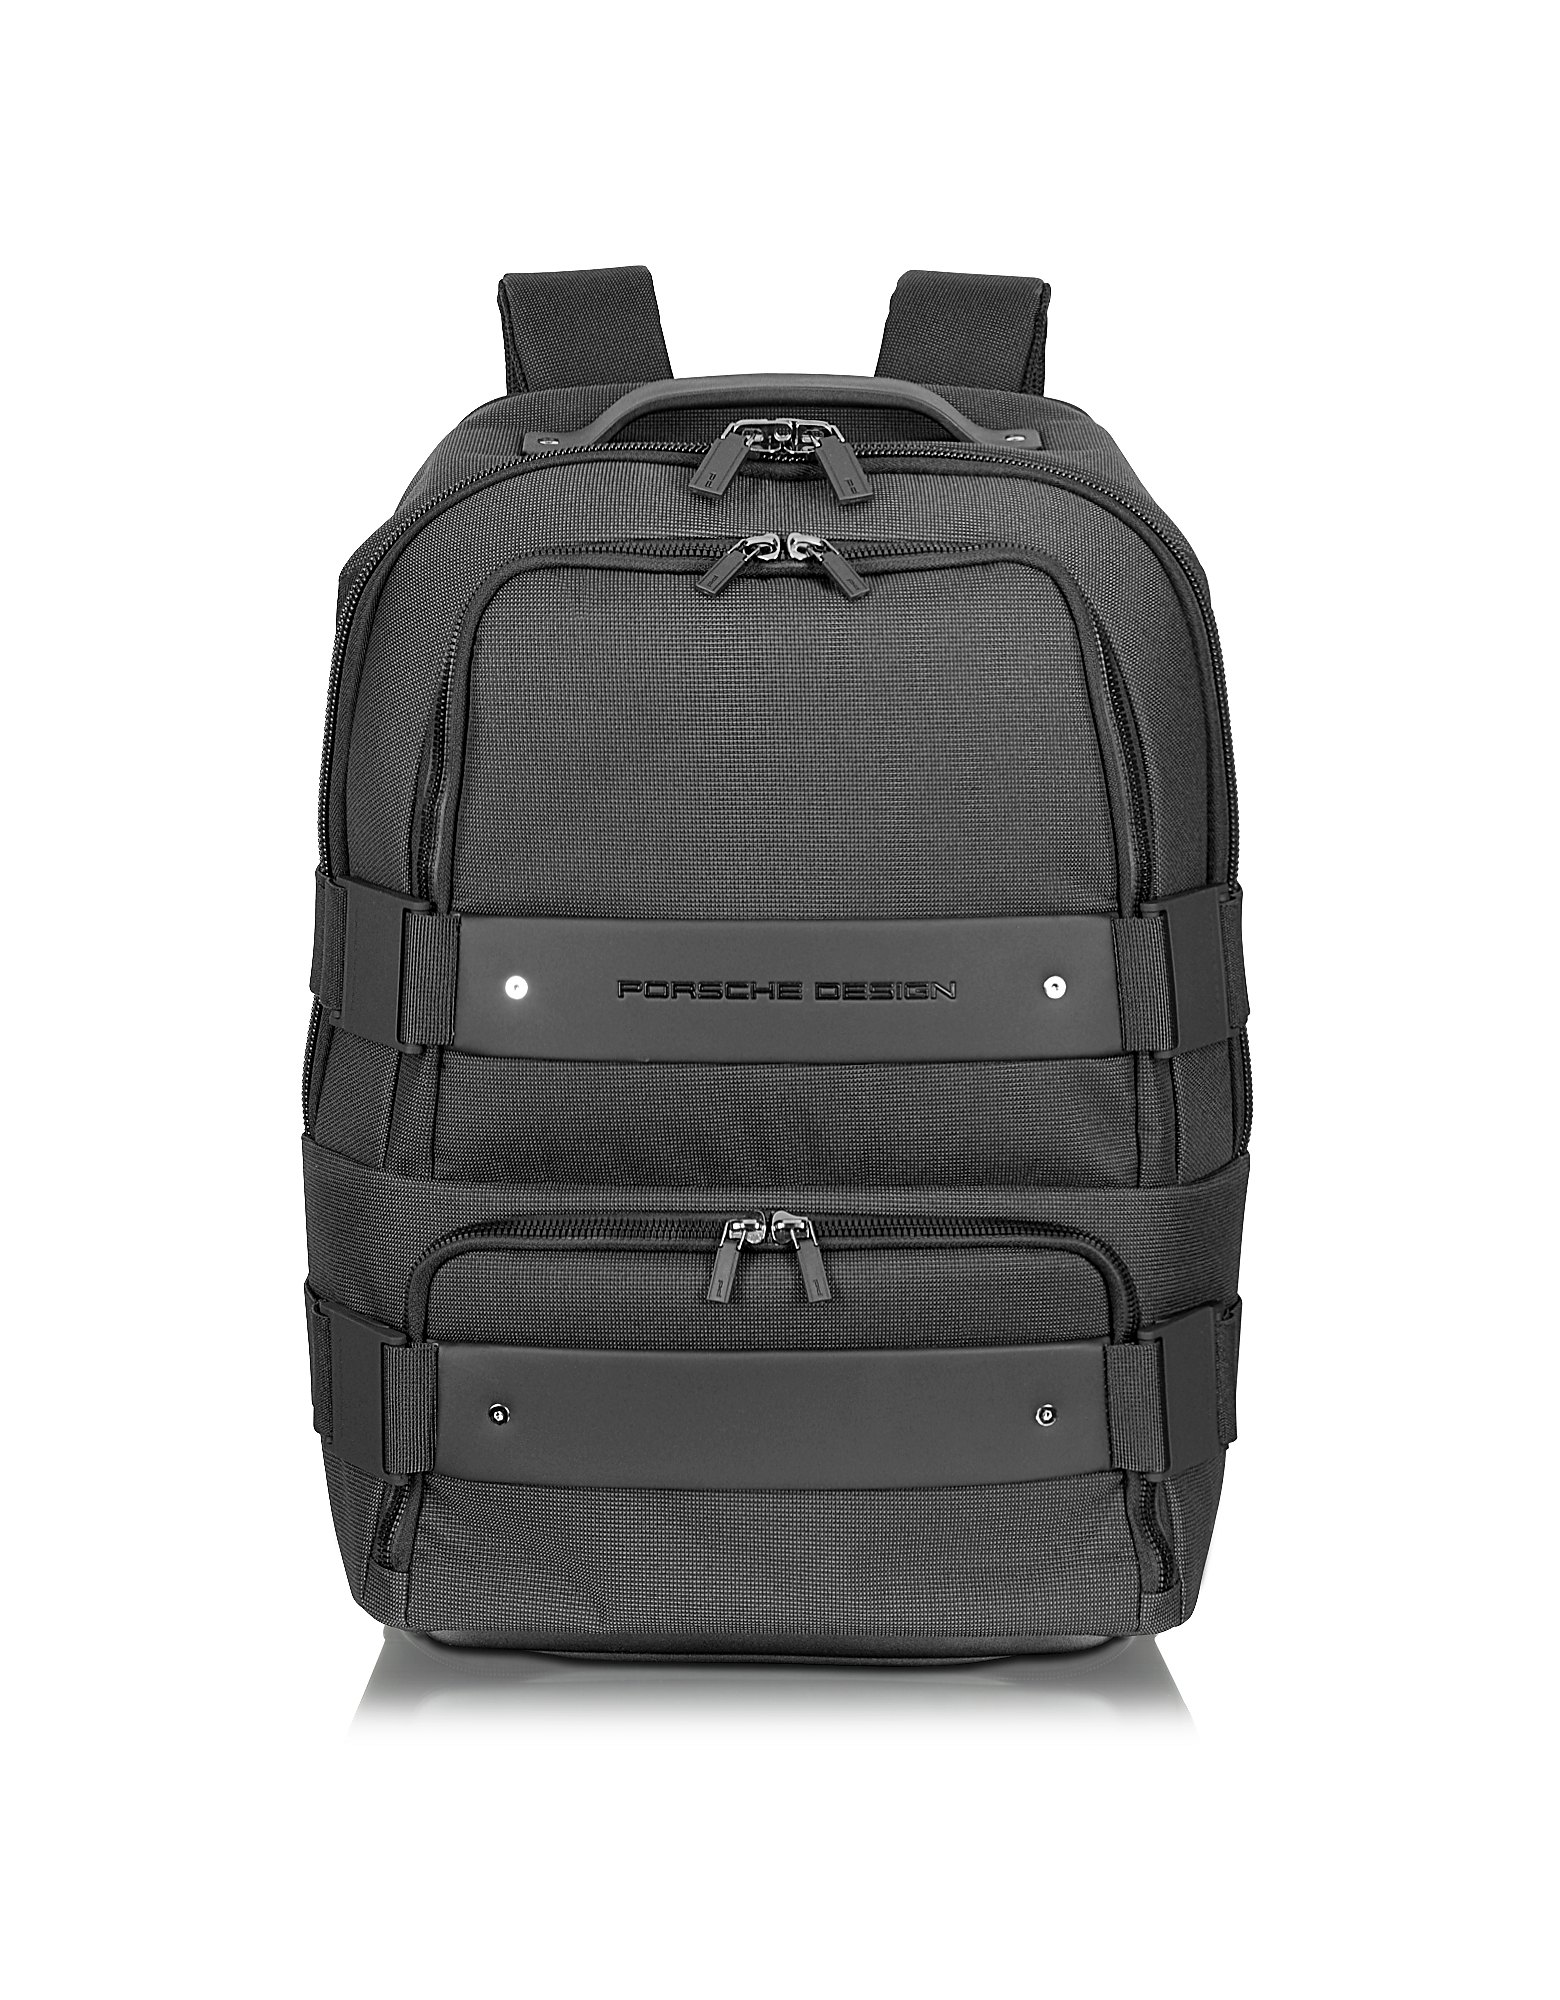 Porsche Design Backpacks, Twin BackBag - Black Backpack Carry On Trolley